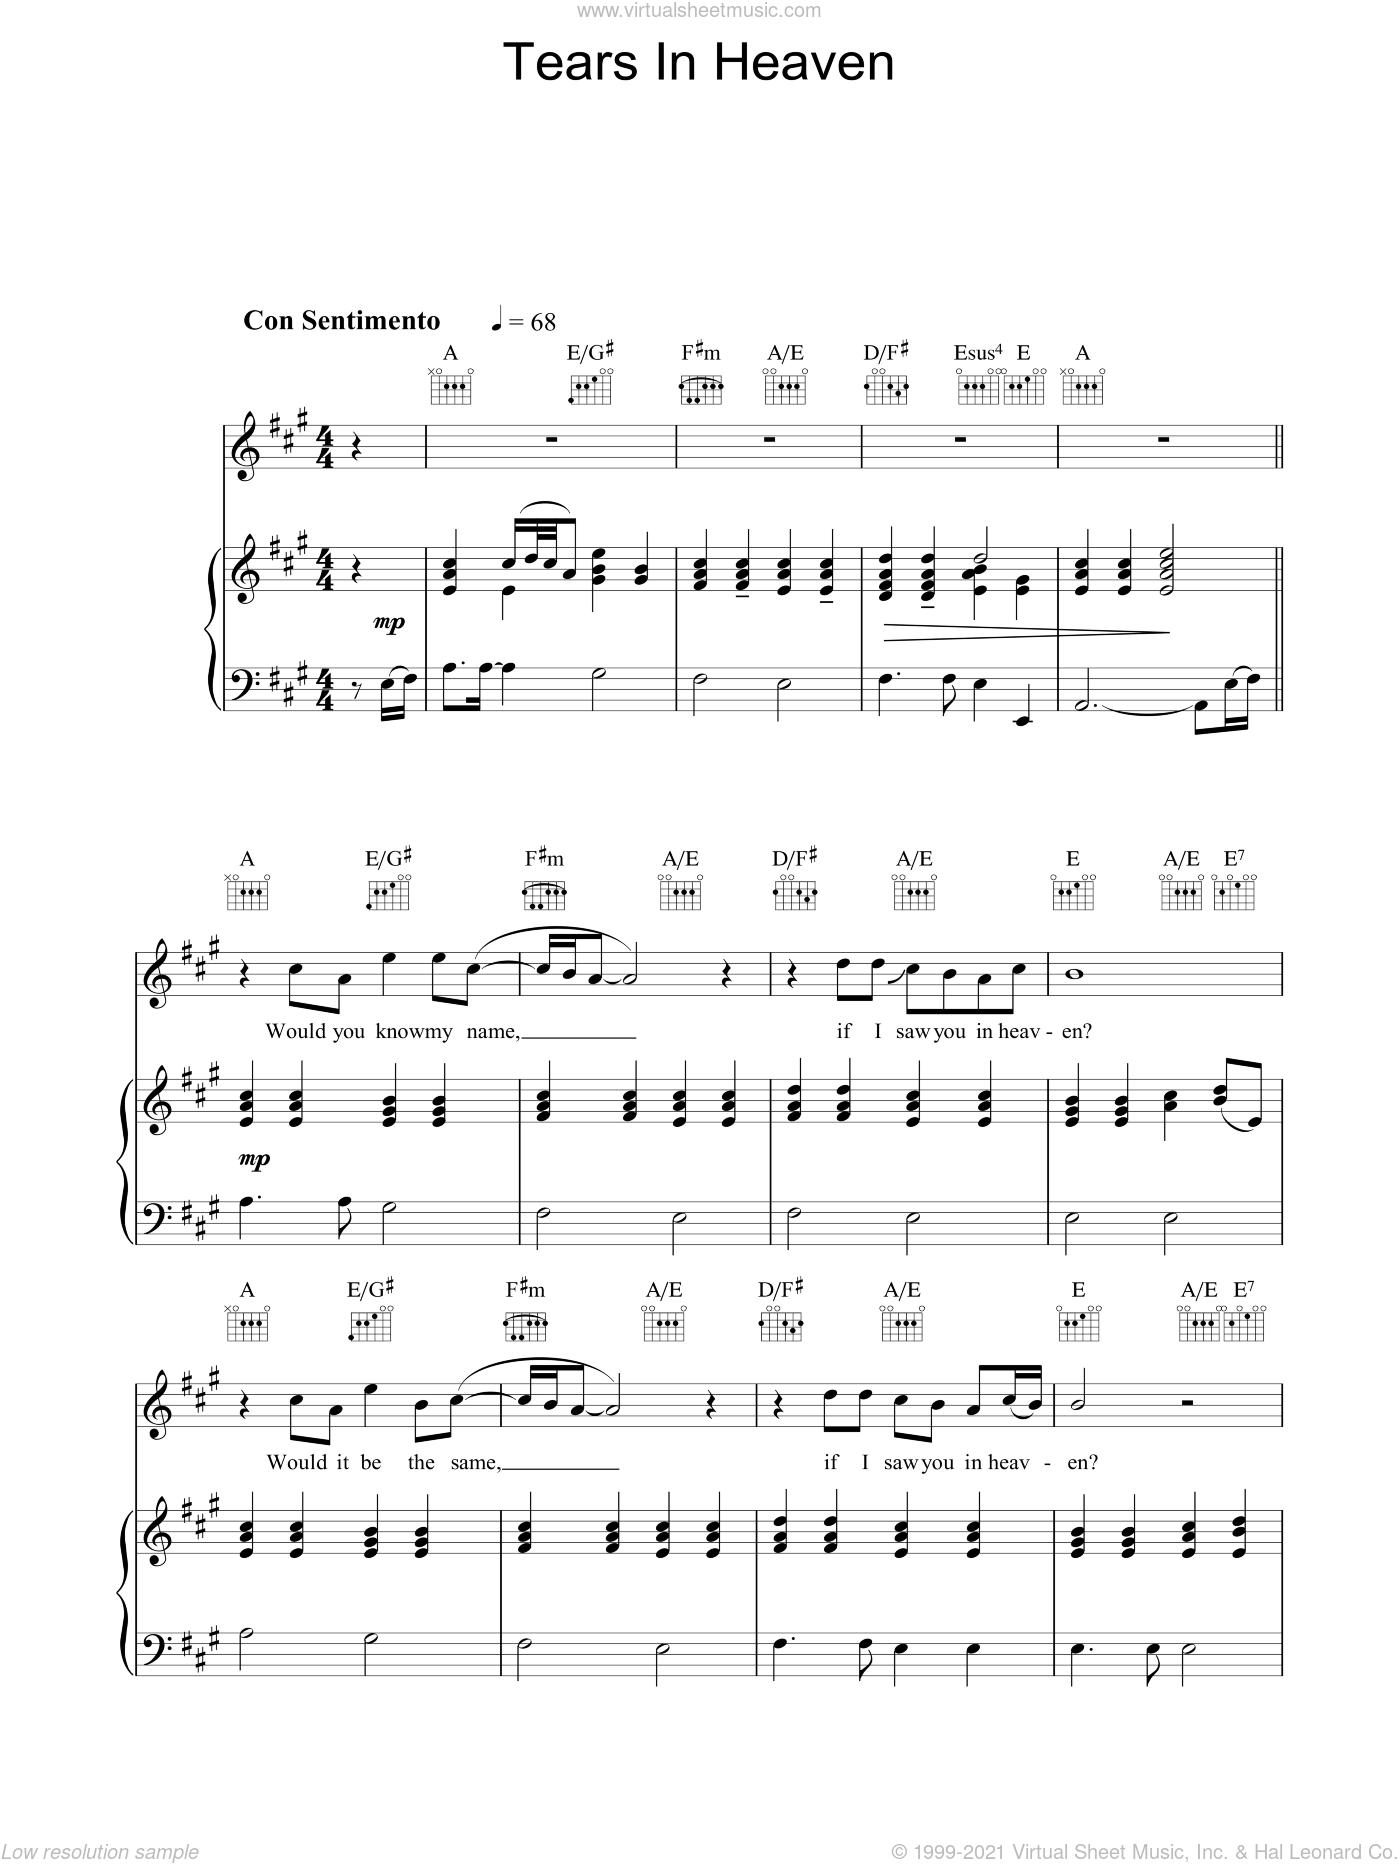 Tears In Heaven sheet music for voice, piano or guitar by Will Jennings, The Choirboys and Eric Clapton. Score Image Preview.